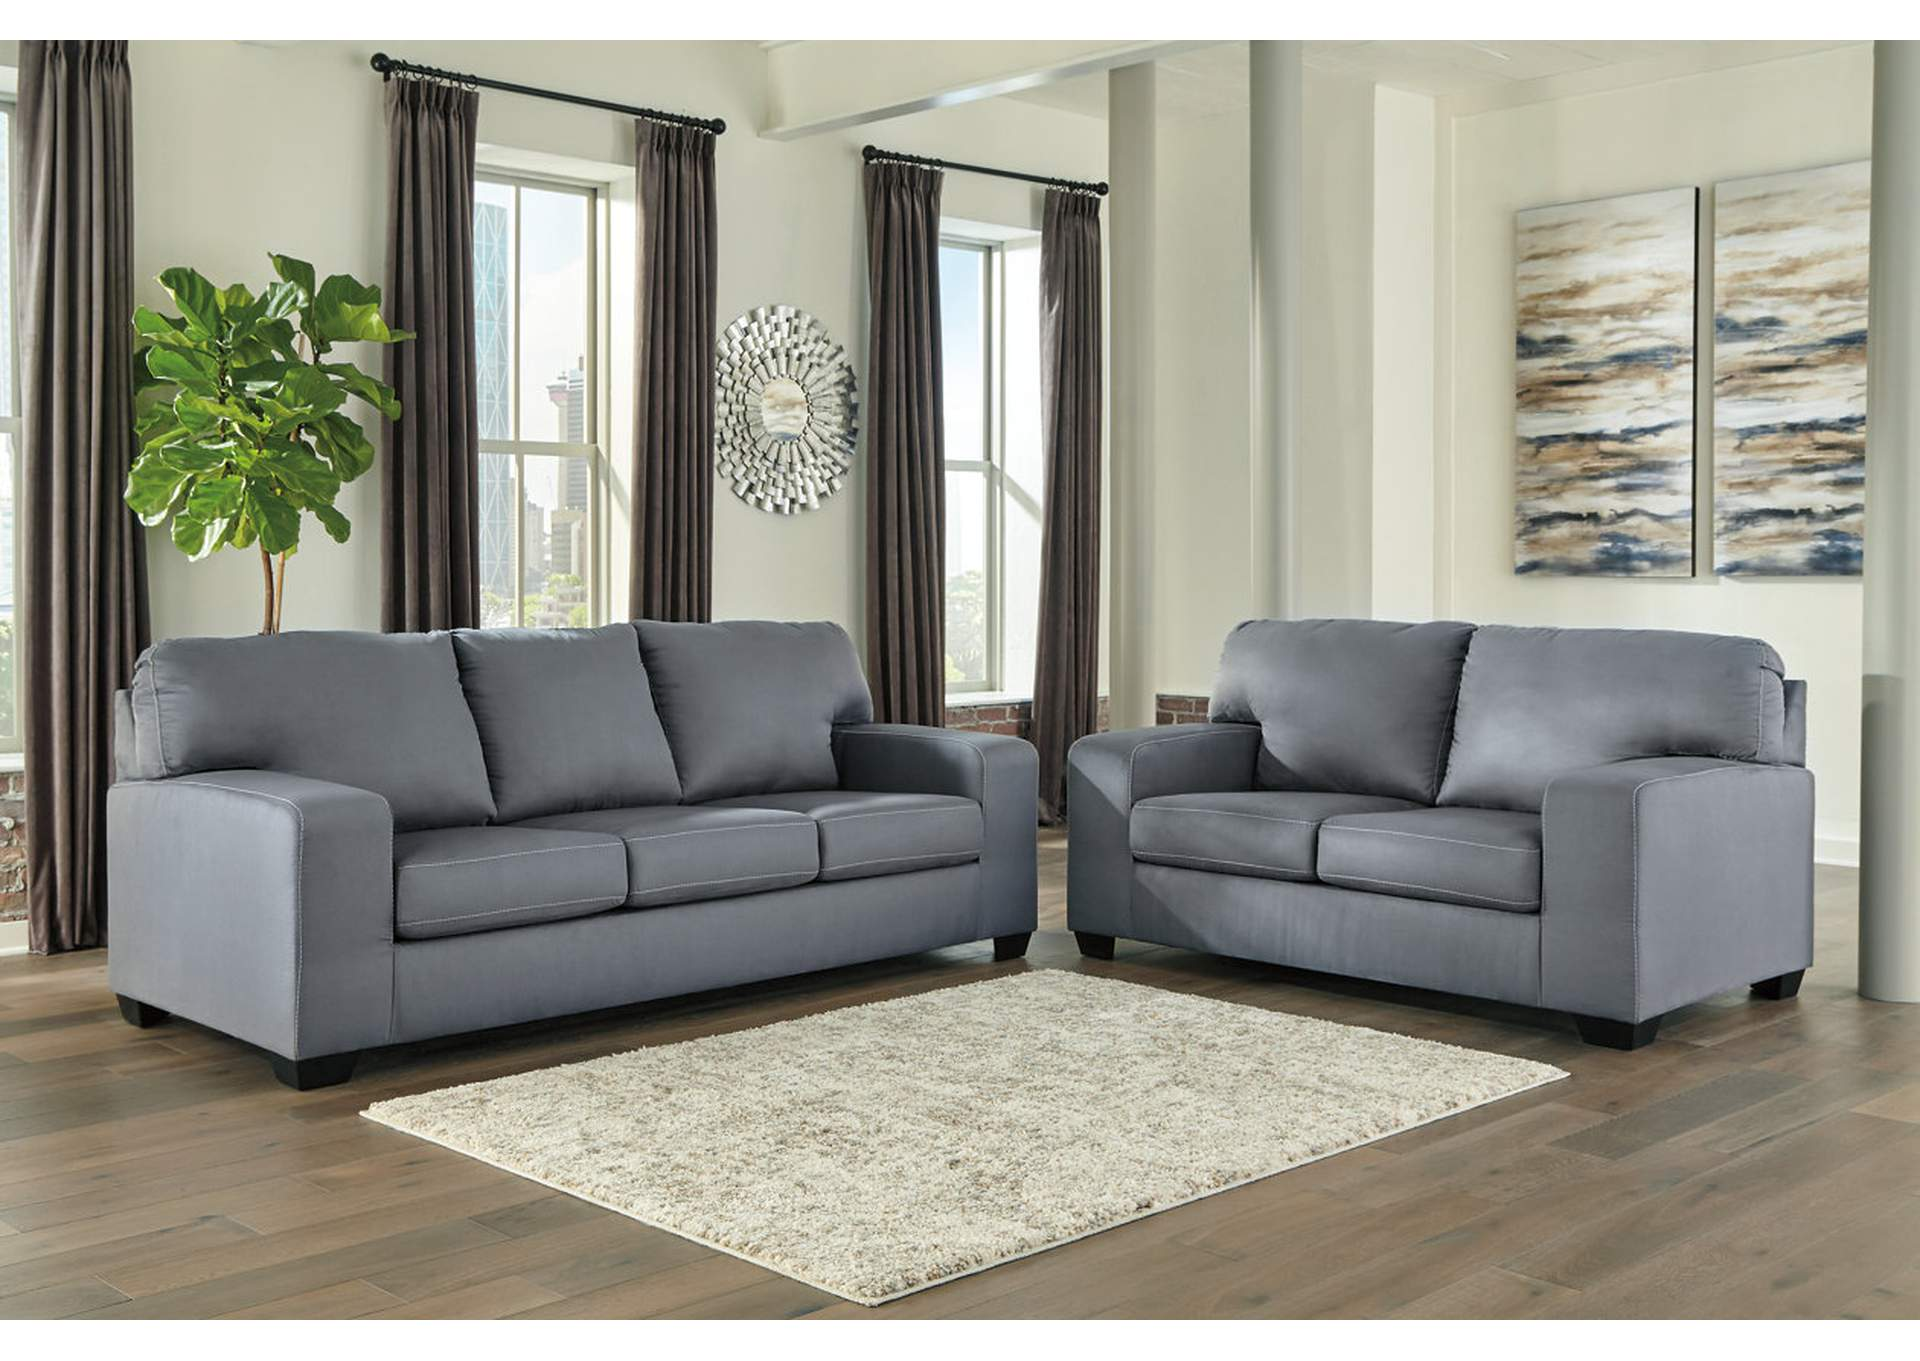 Kanosh Steel Sofa and Loveseat,Ashley